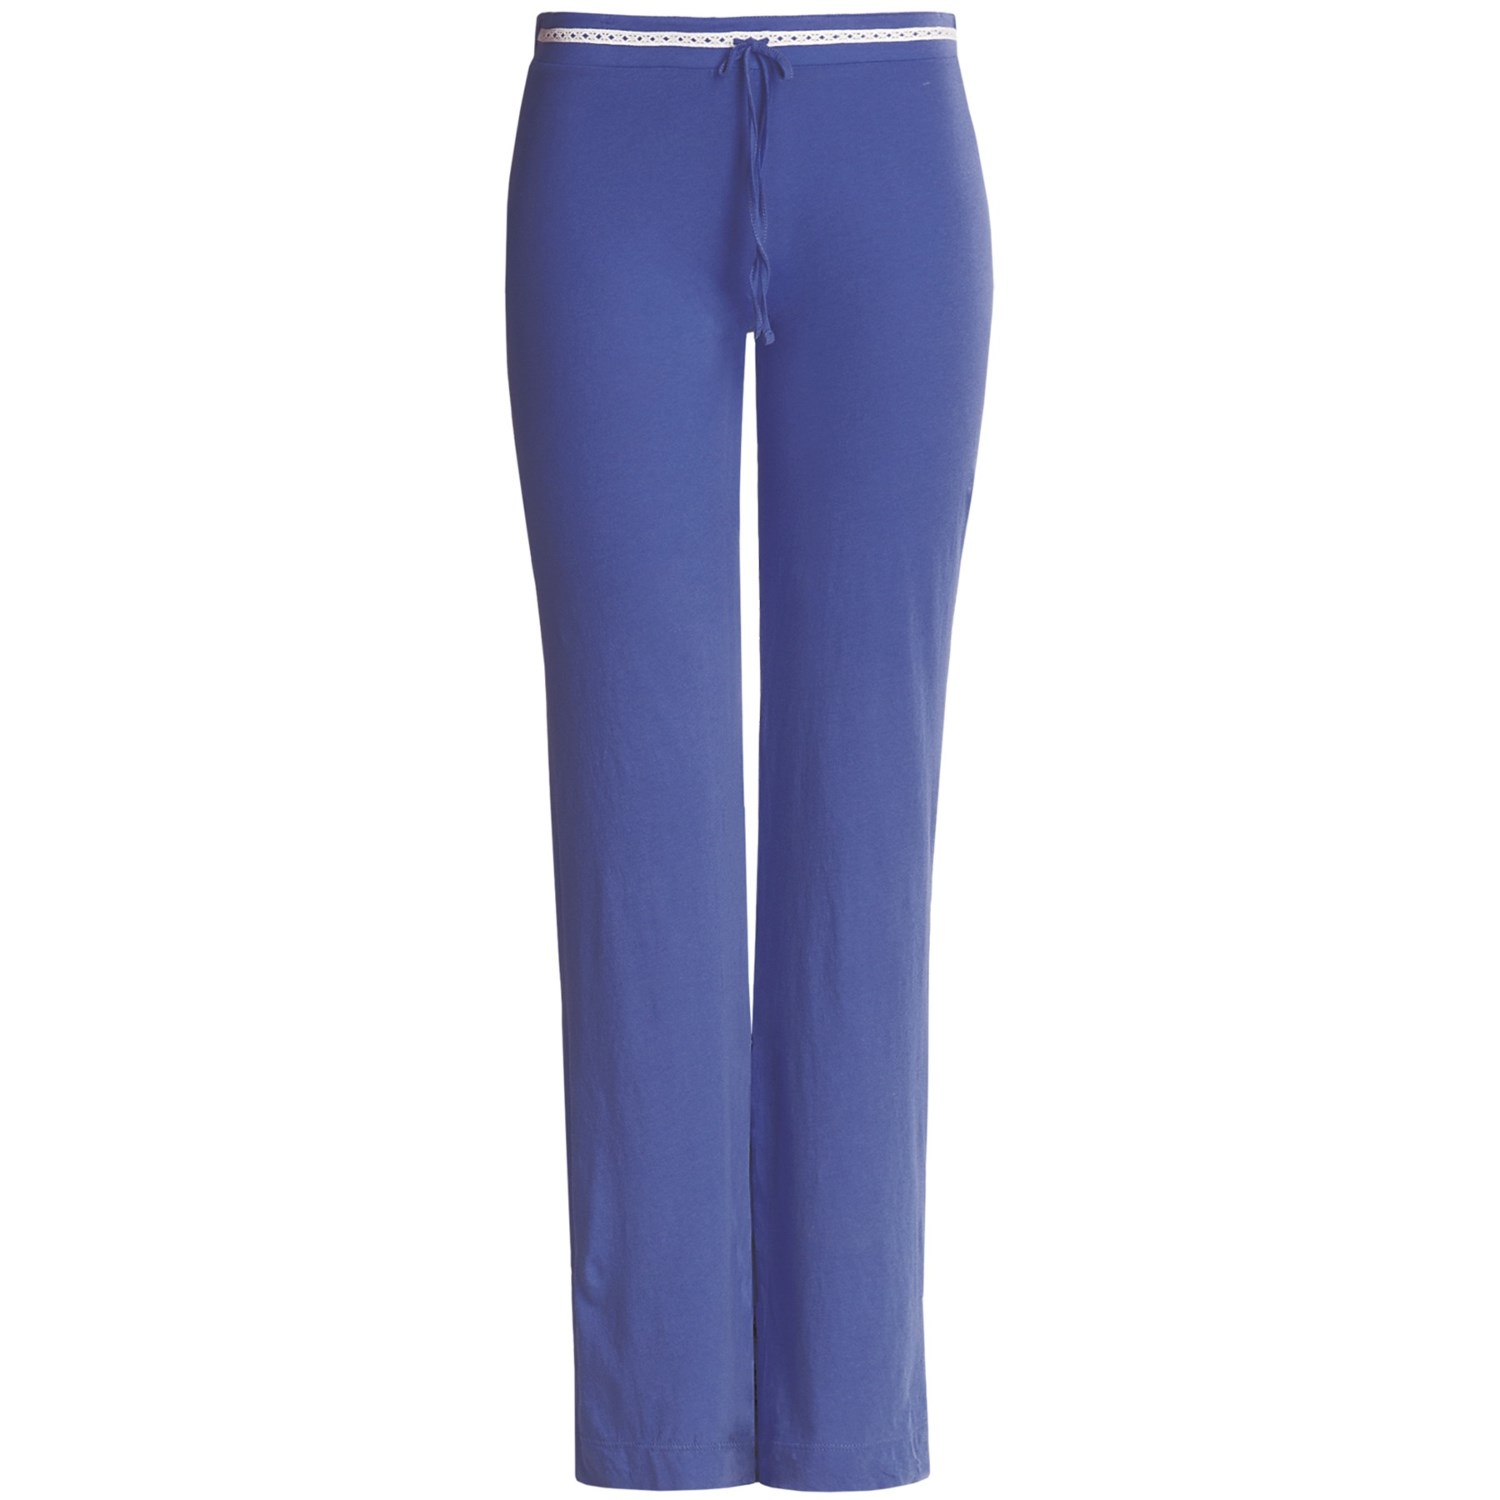 Luxury Women Are Now Wearing More Yoga Pants The Problem For Cotton Is Twofold These Yoga Pants Contain More Synthetic Fiber Than Denim And More Fiber Goes Into Denim Than Yoga Pants Even If You Had 100 Percent Cotton Yoga Pants, Wed